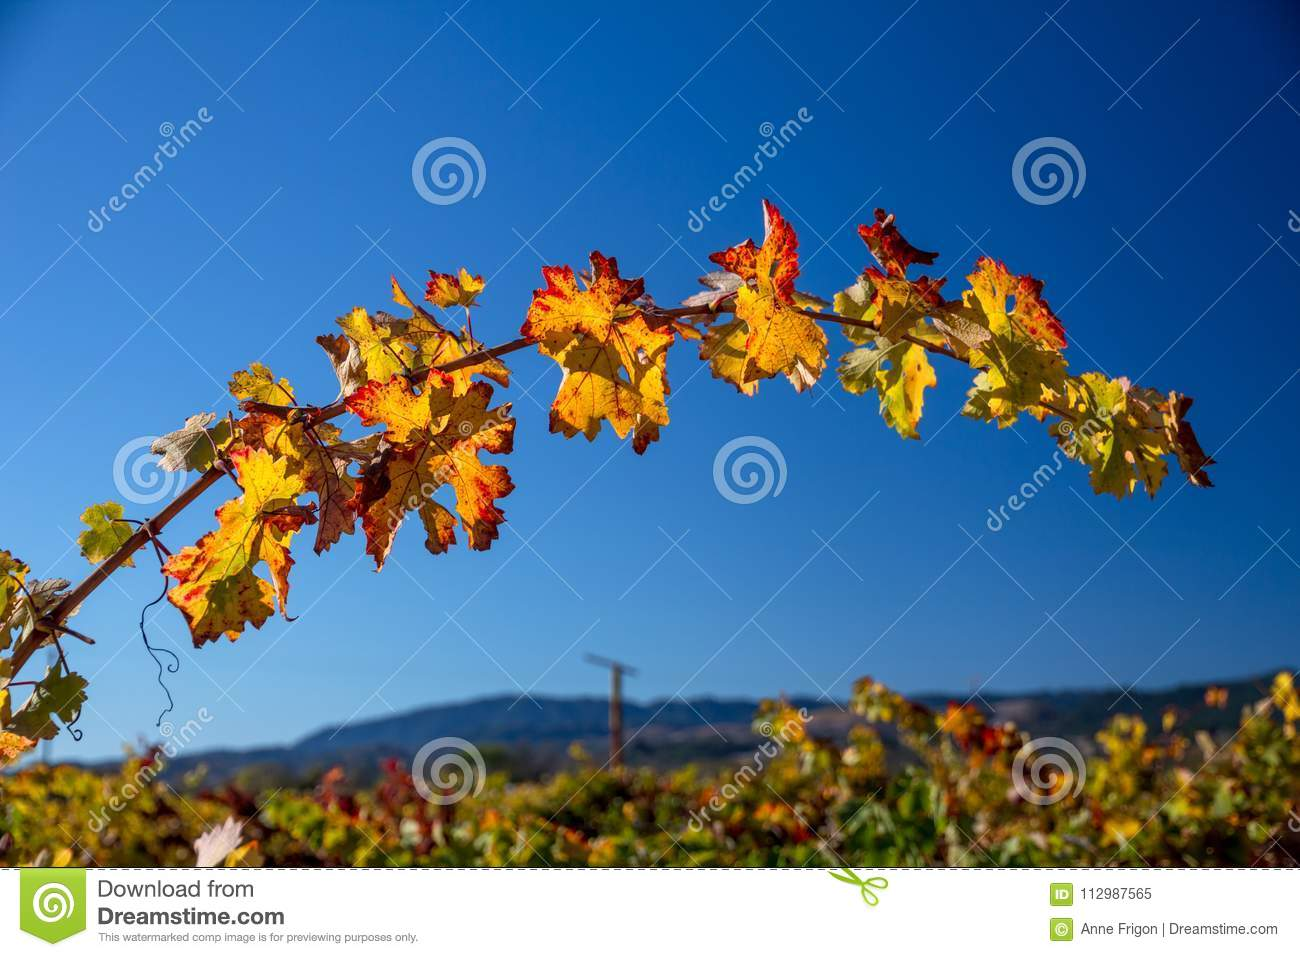 Arching grapevine with red and orange leaves under blue sky